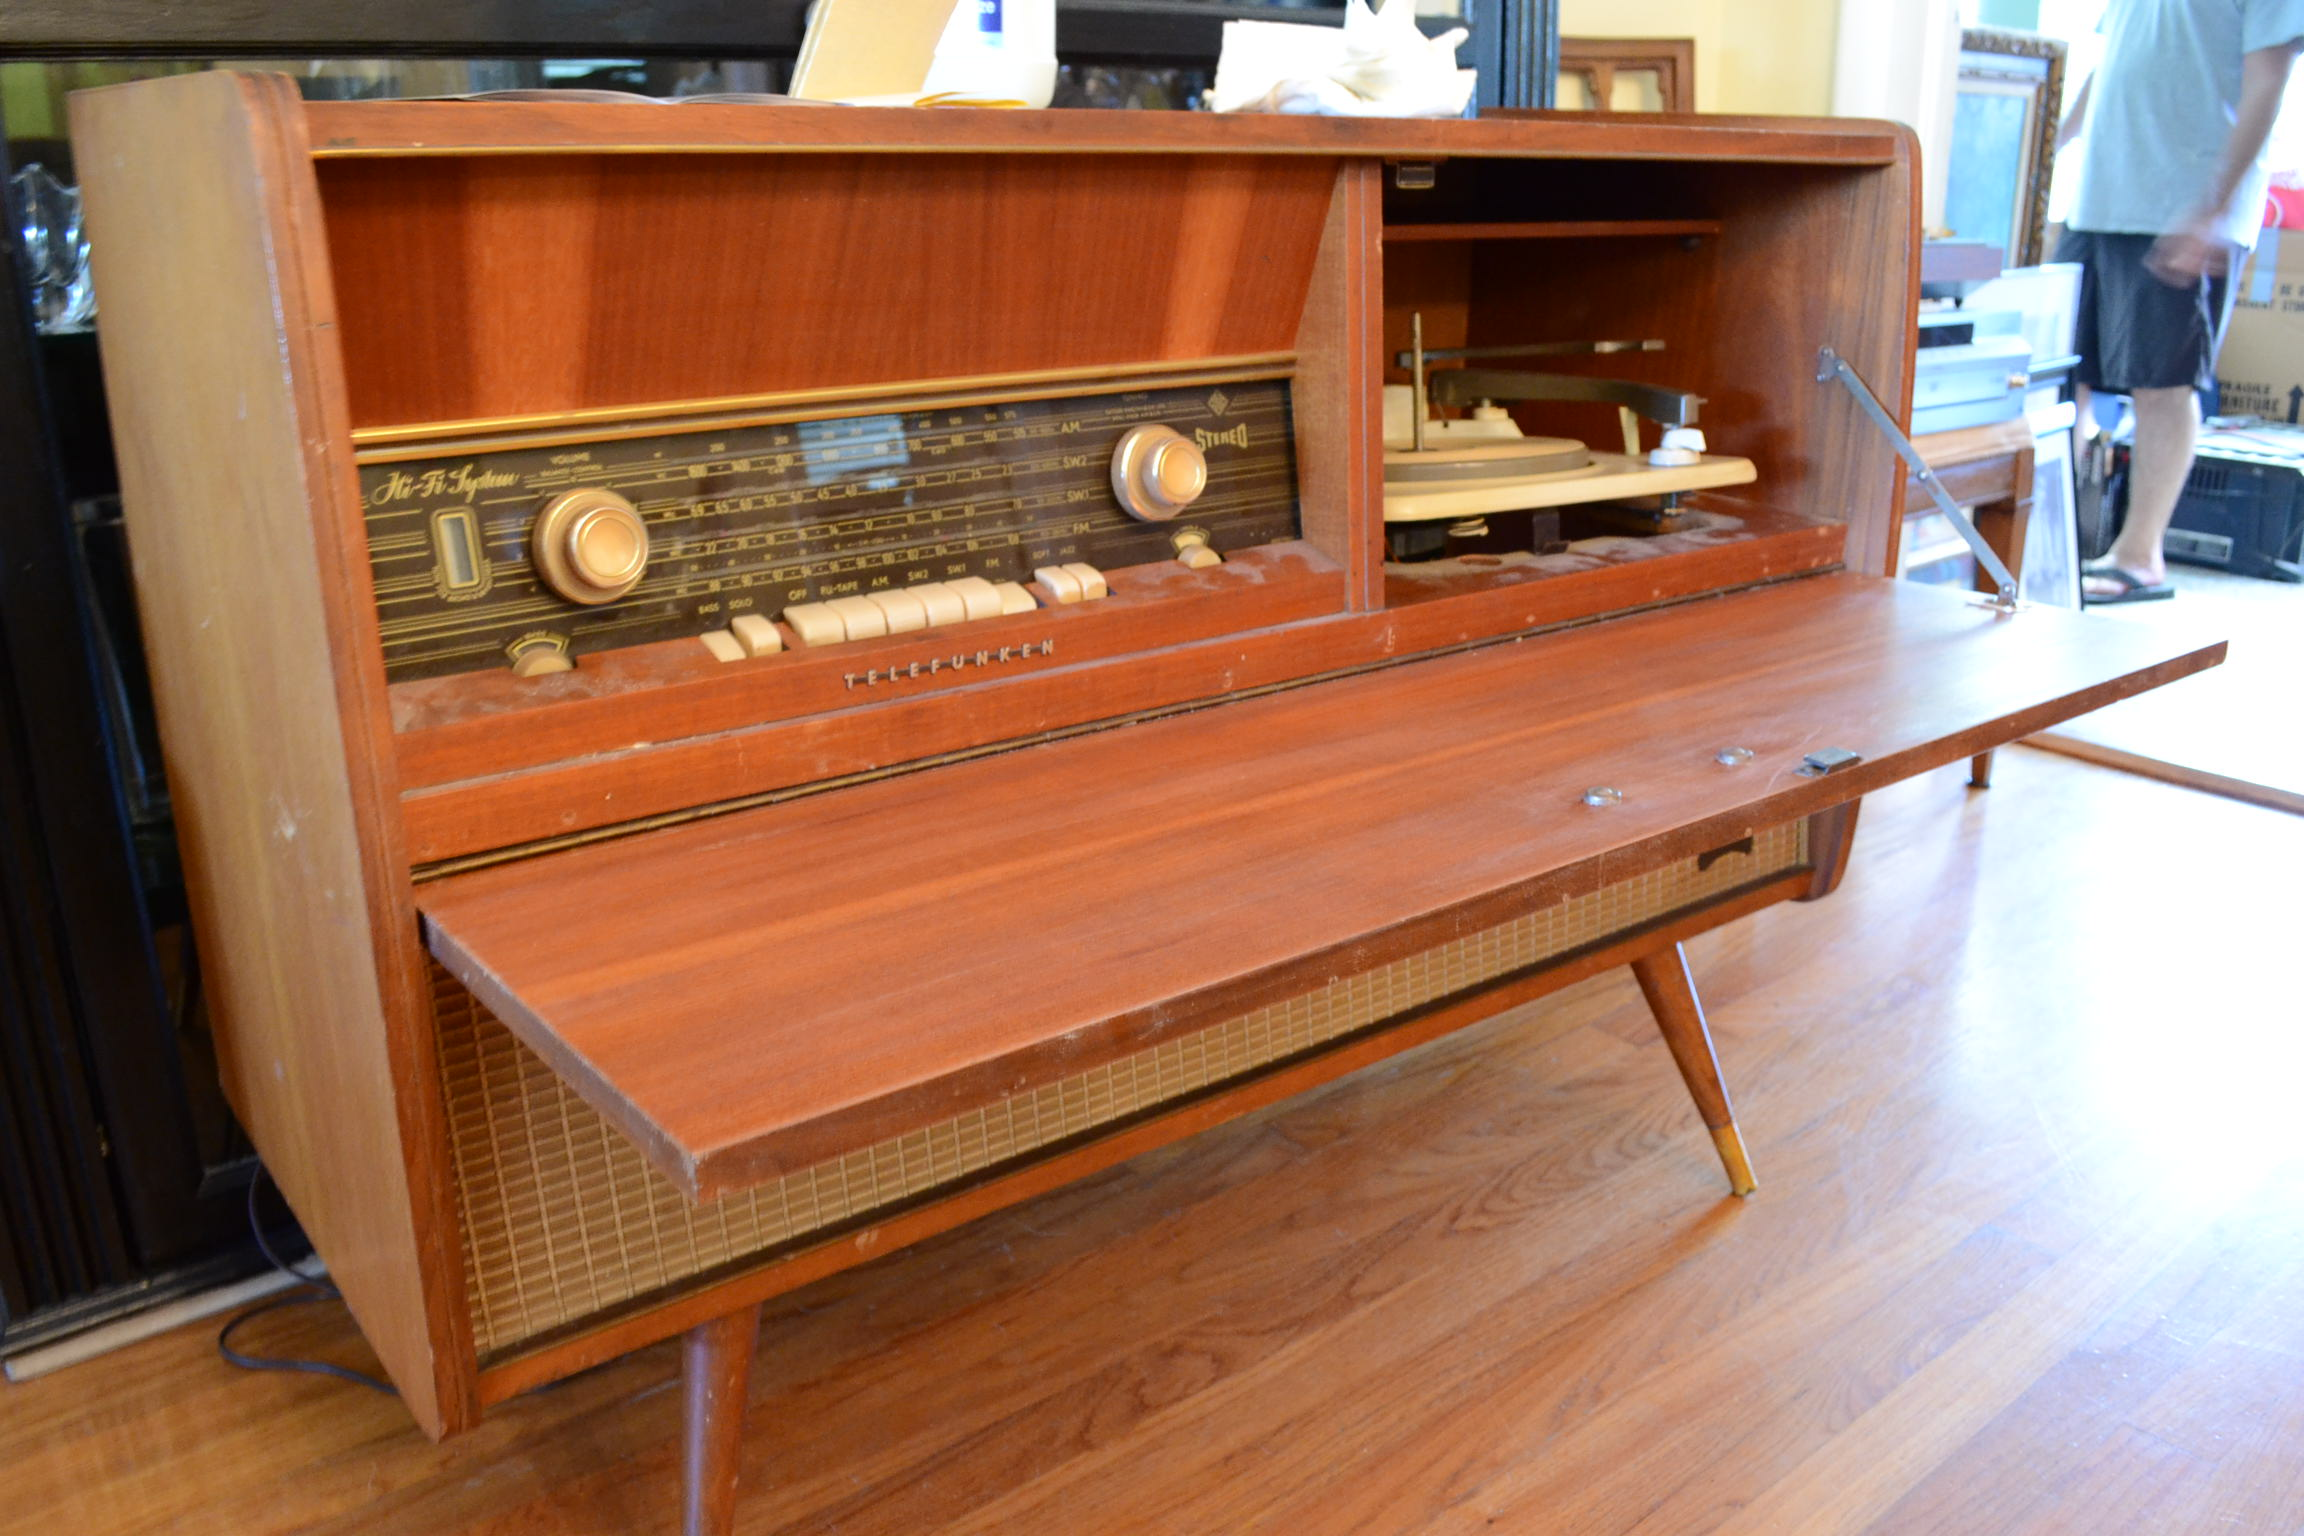 Old Radio Model further Restore An Old Stereo Console Diy as well  together with 251638697900414527 moreover Decoracion De Alcobas Para Ninos I85a7yeb8. on telefunken console radio record player